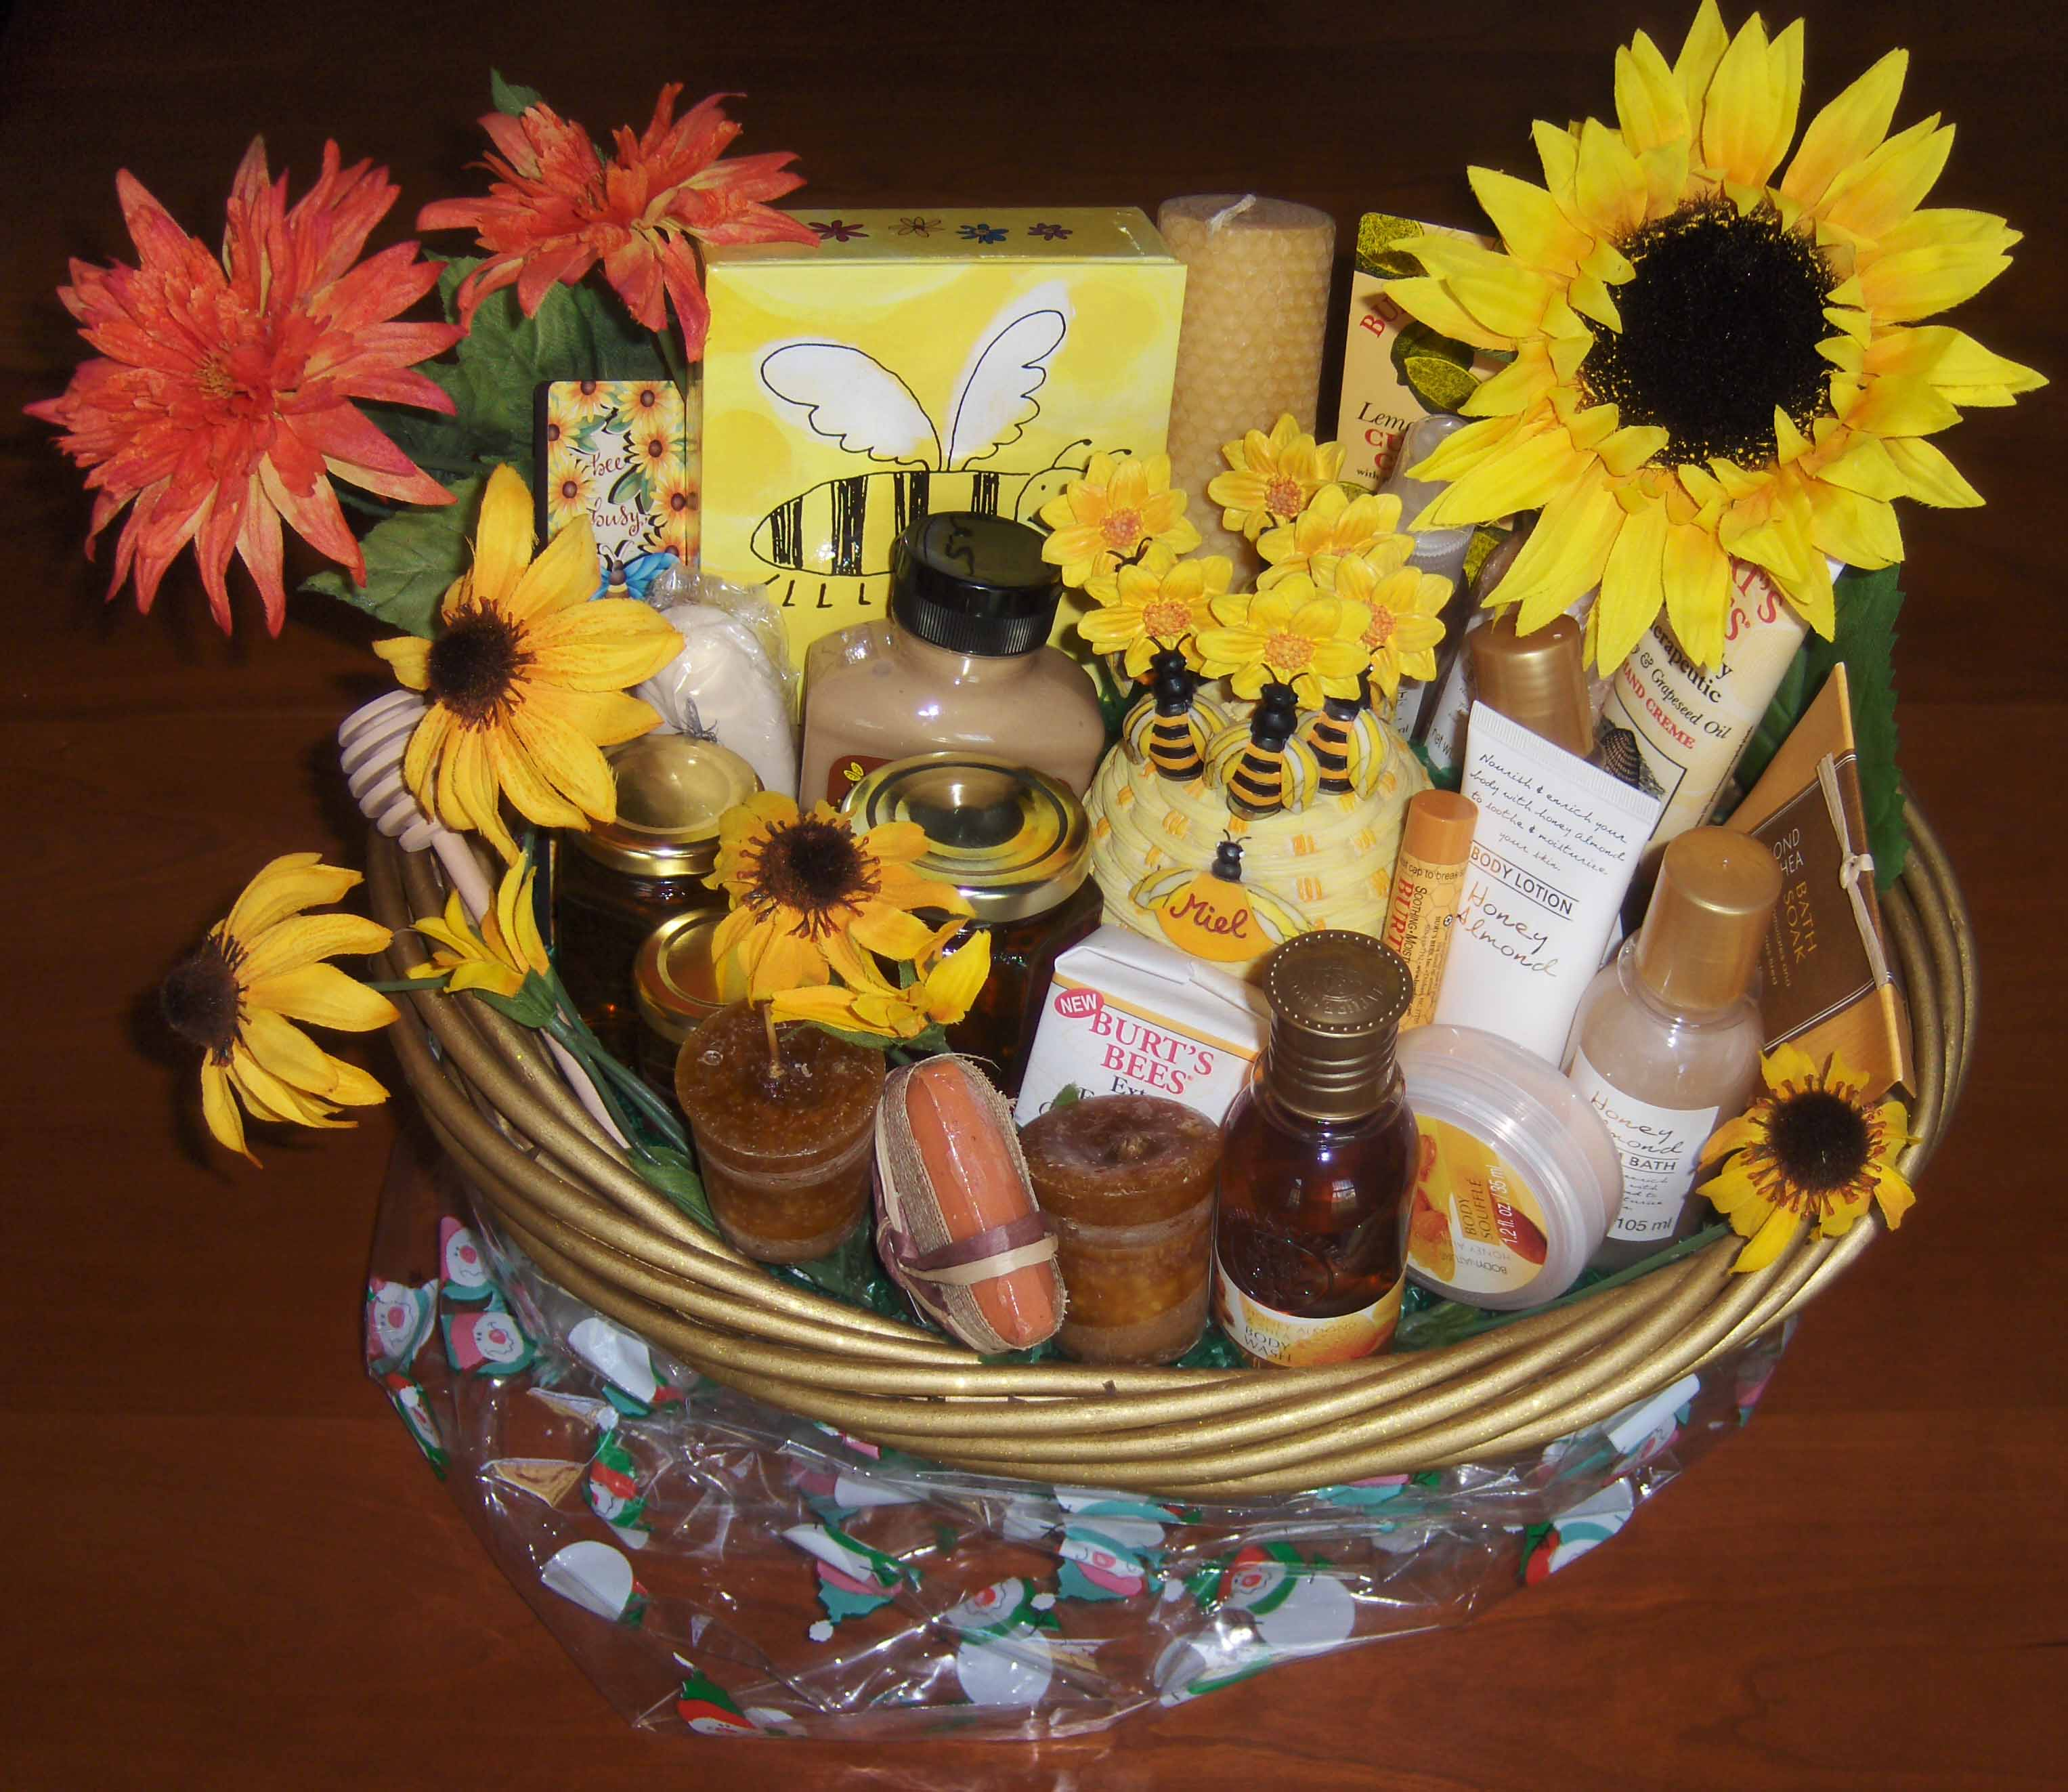 team has donated the bee s day basket for the basket raffle to be